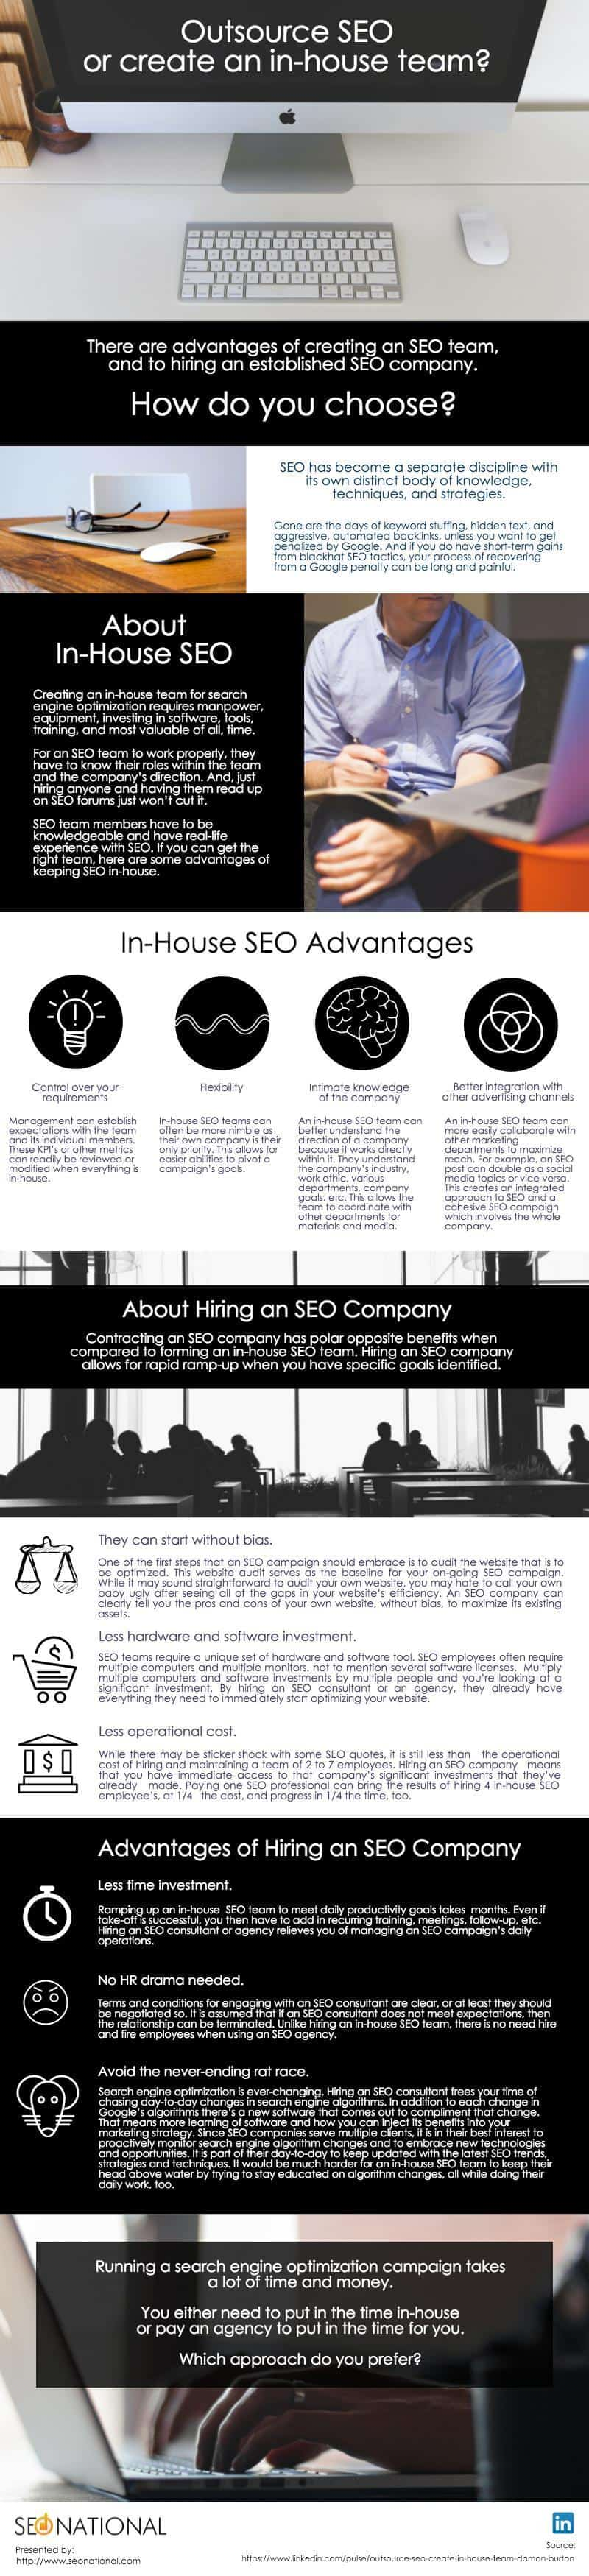 SEO In Hour Or Outsource